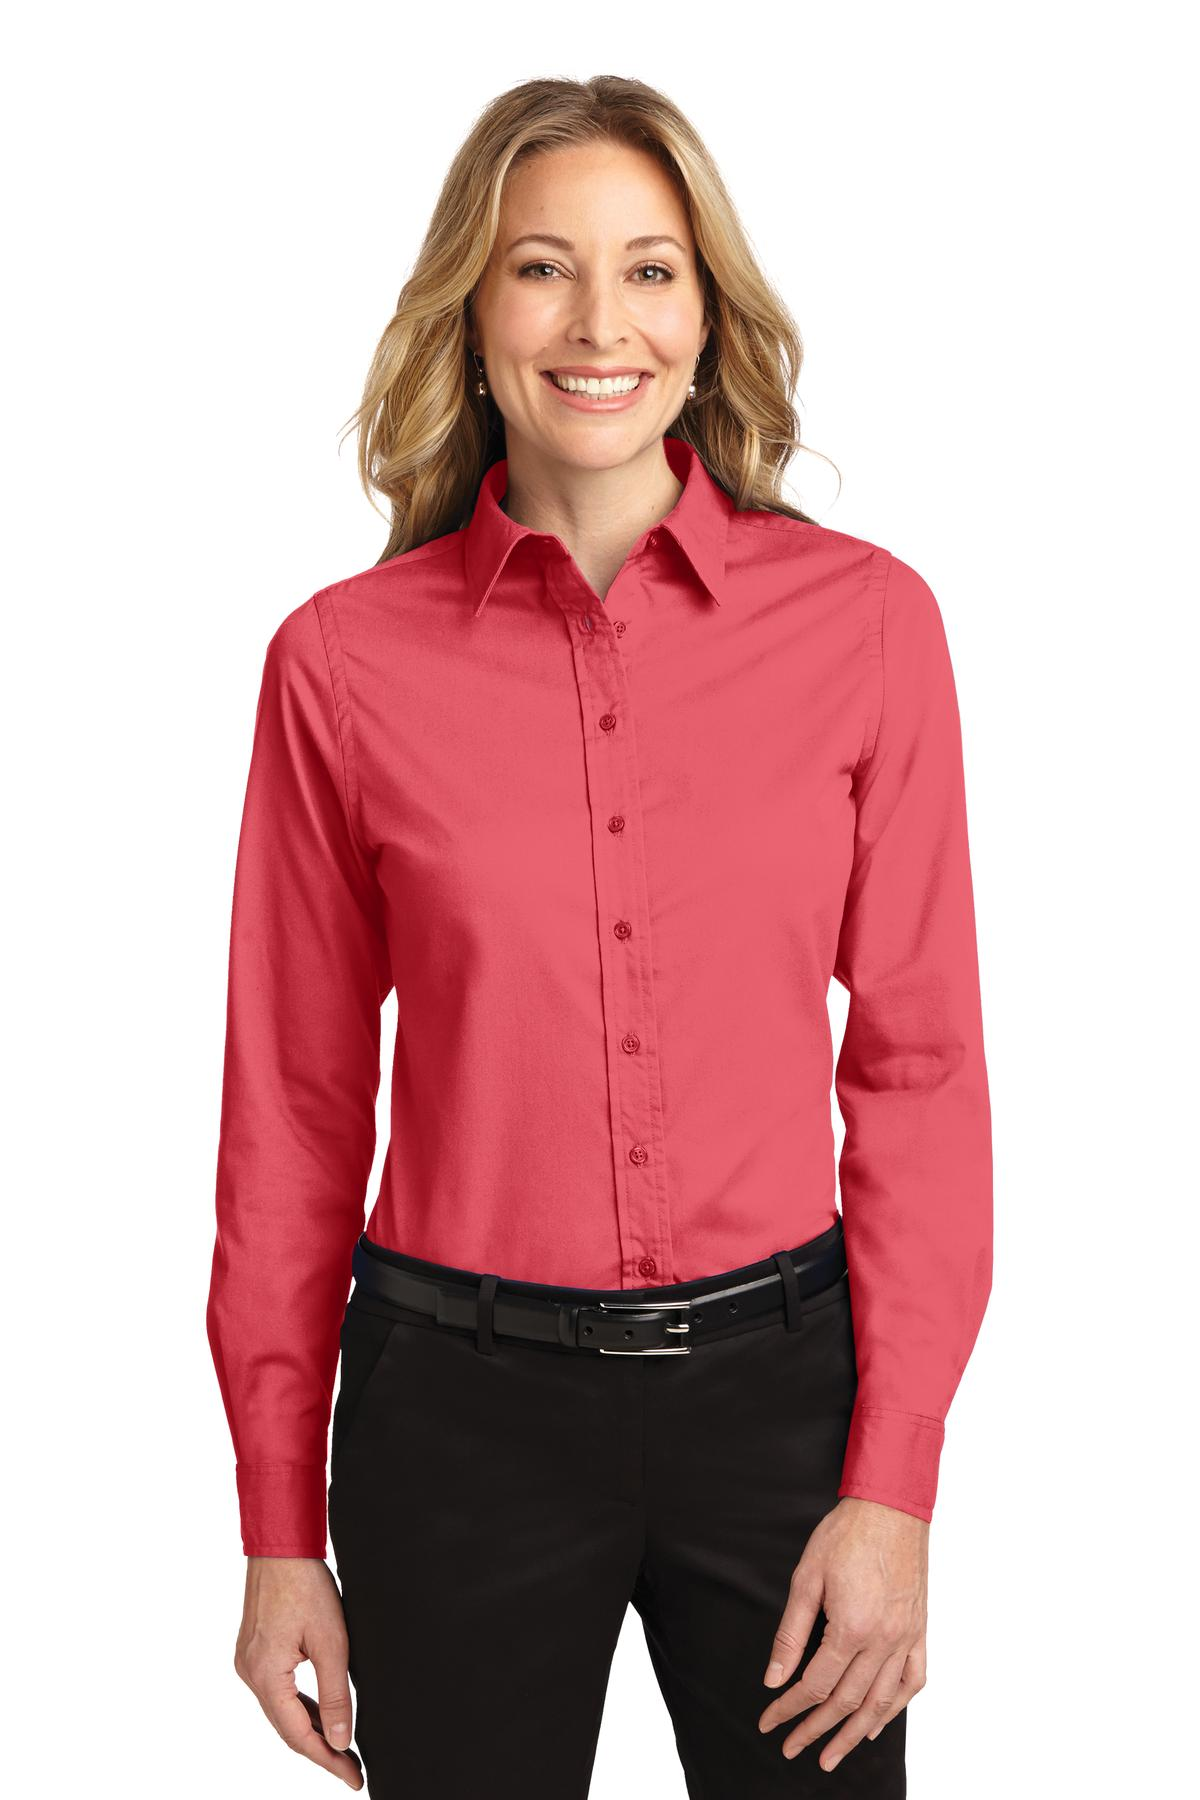 Port Authority® Ladies Long Sleeve Easy Care Shirt.-Port Authority